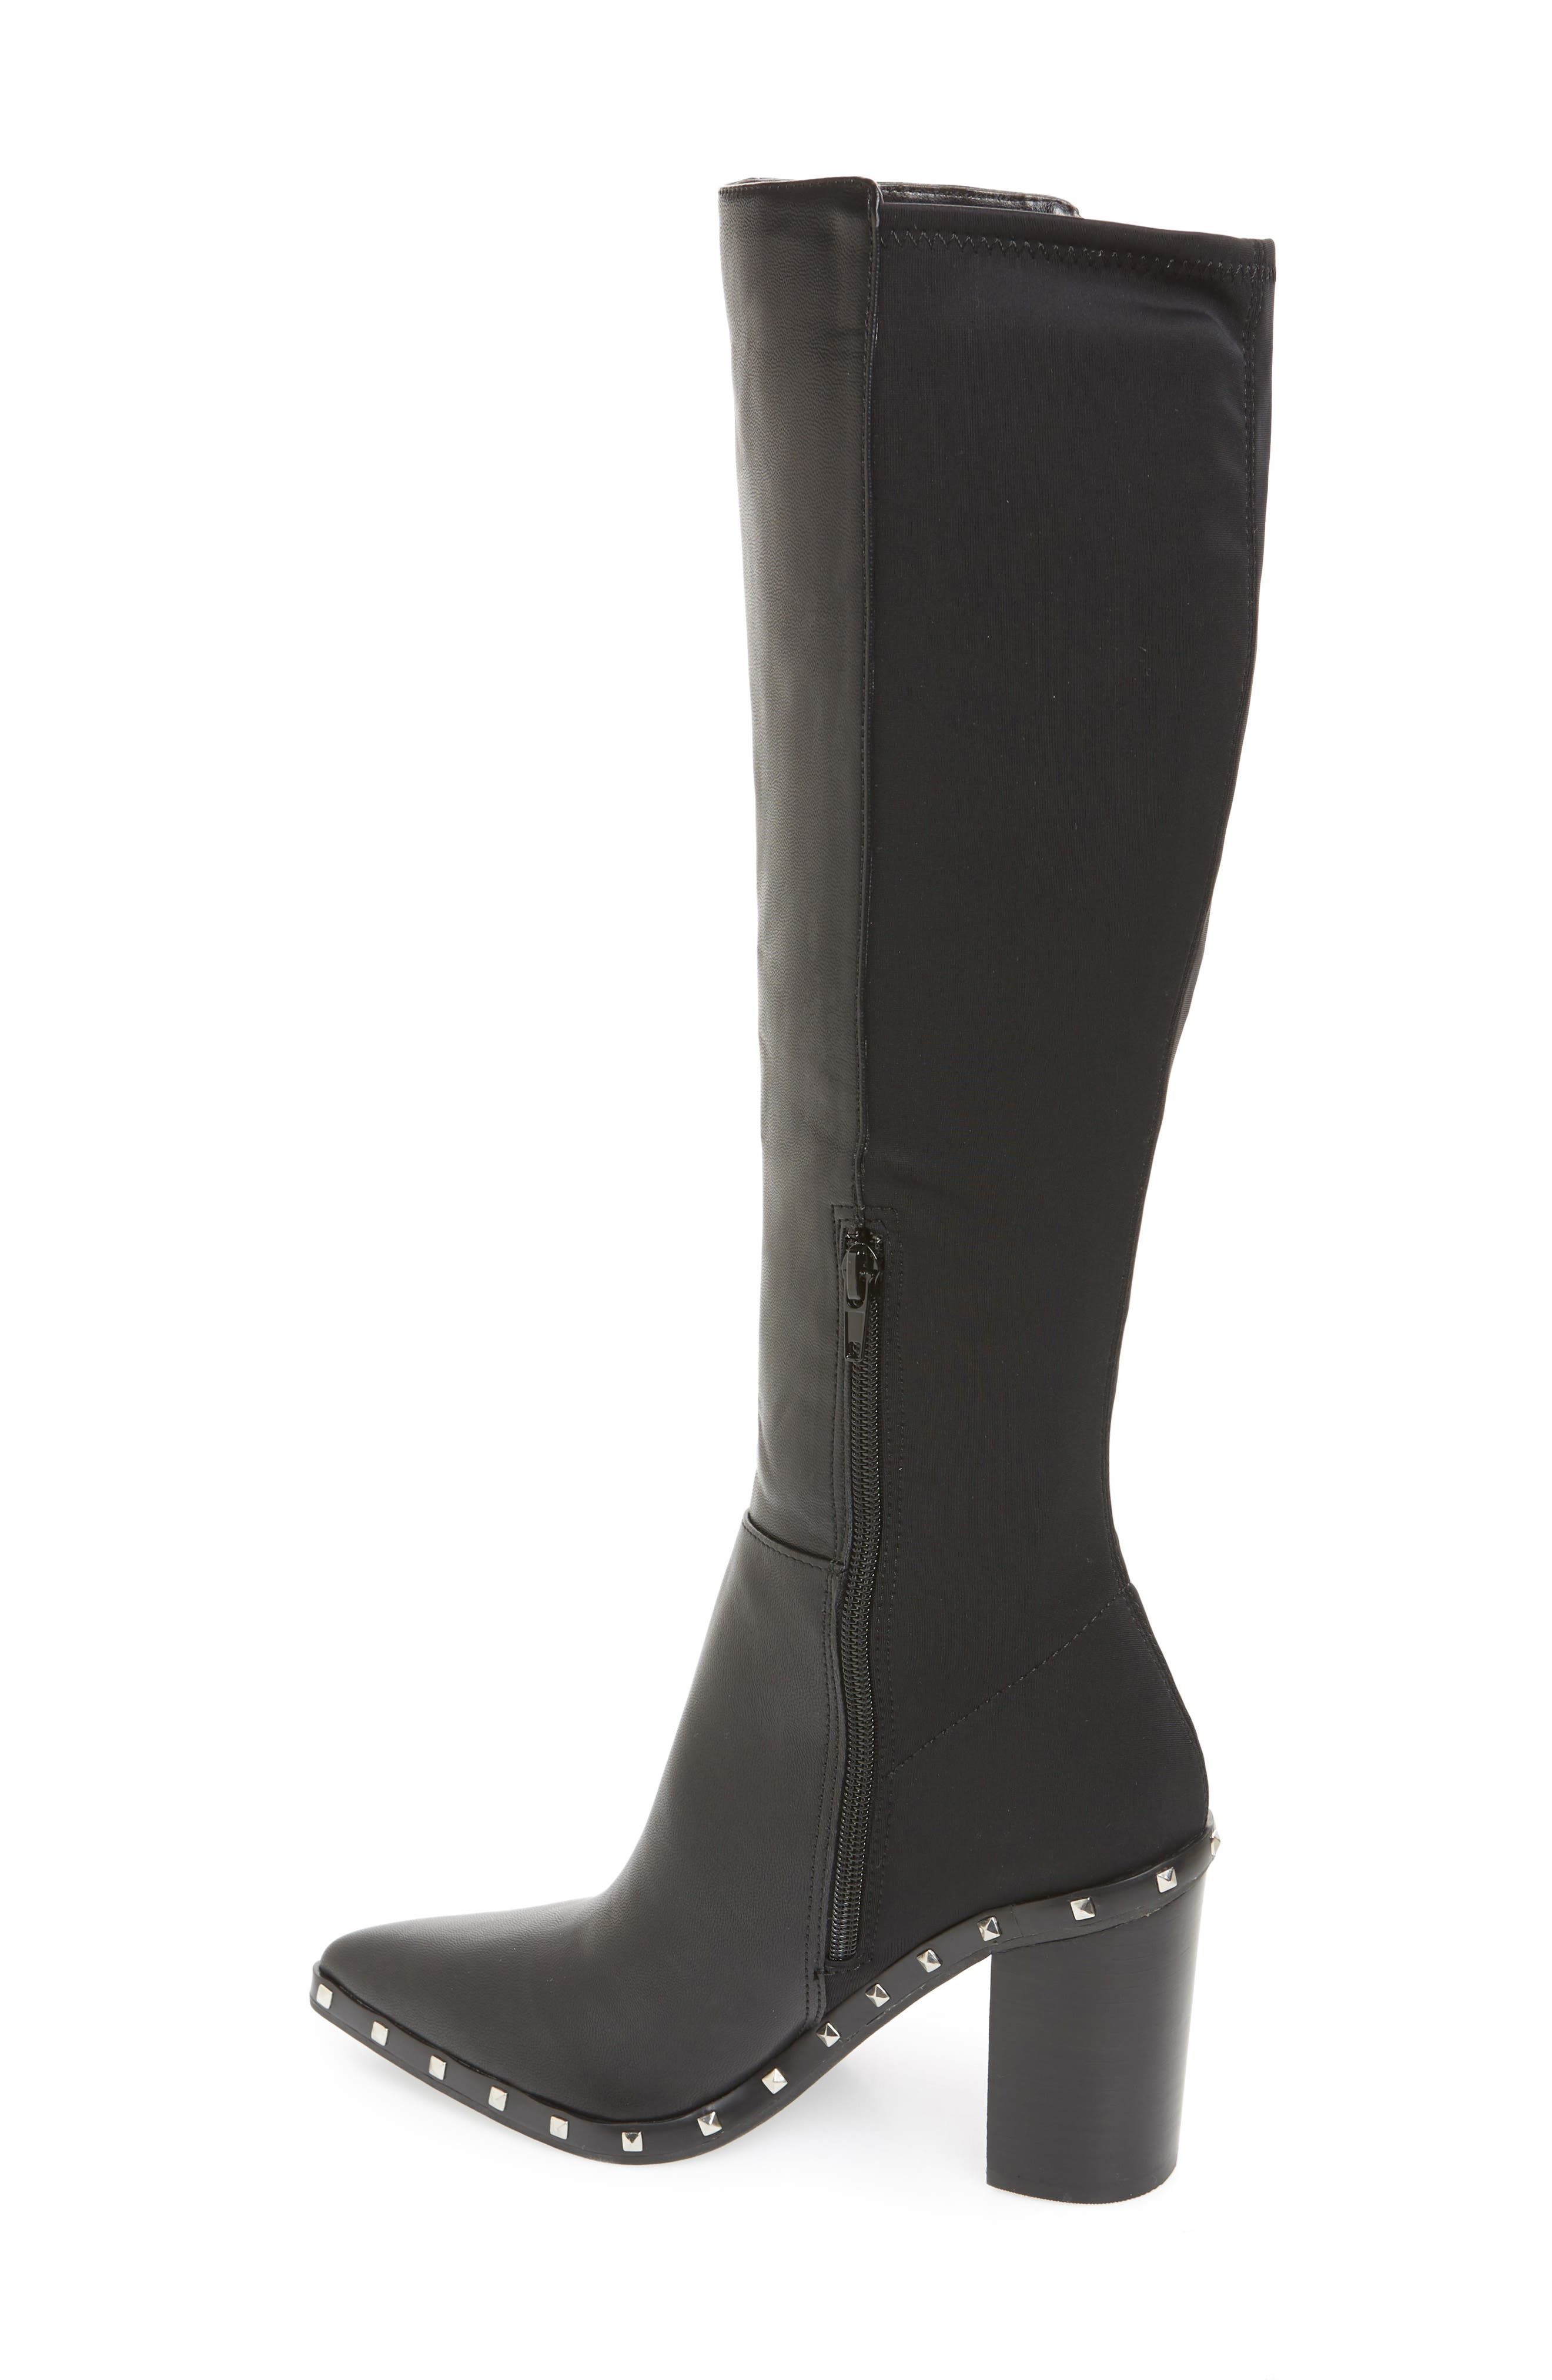 CHARLES BY CHARLES DAVID, Studded Knee High Stretch Boot, Alternate thumbnail 2, color, BLACK FAUX NUBUCK LEATHER